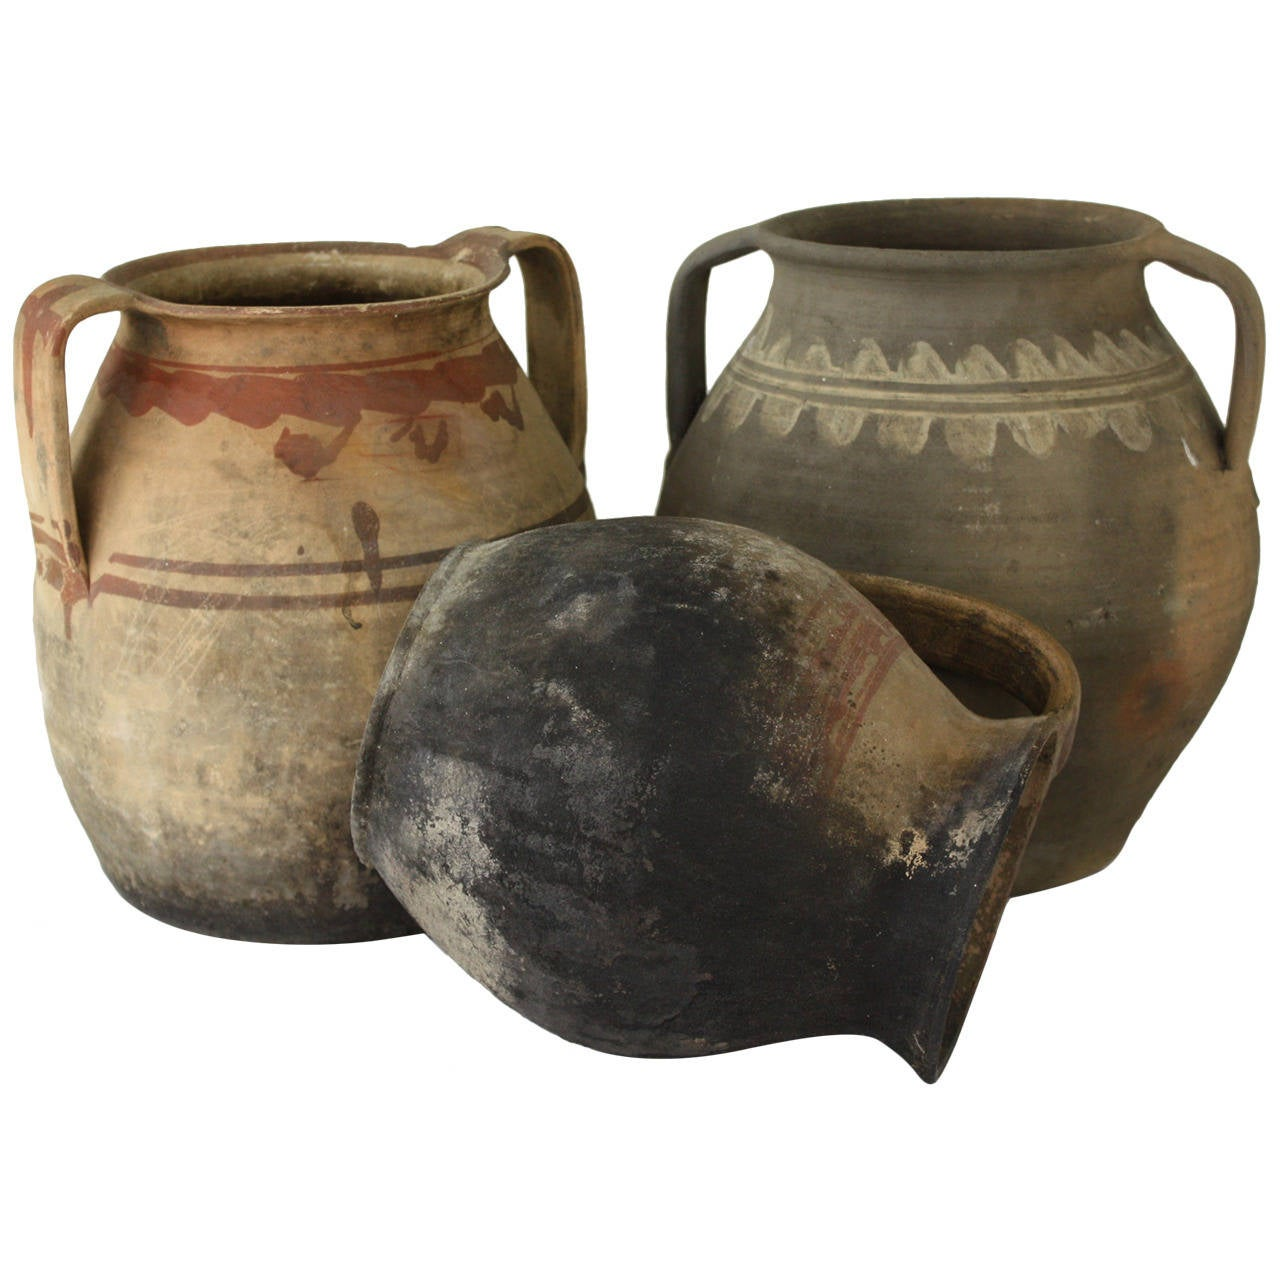 Collection of Three Antique Romanian Cooking Vessels